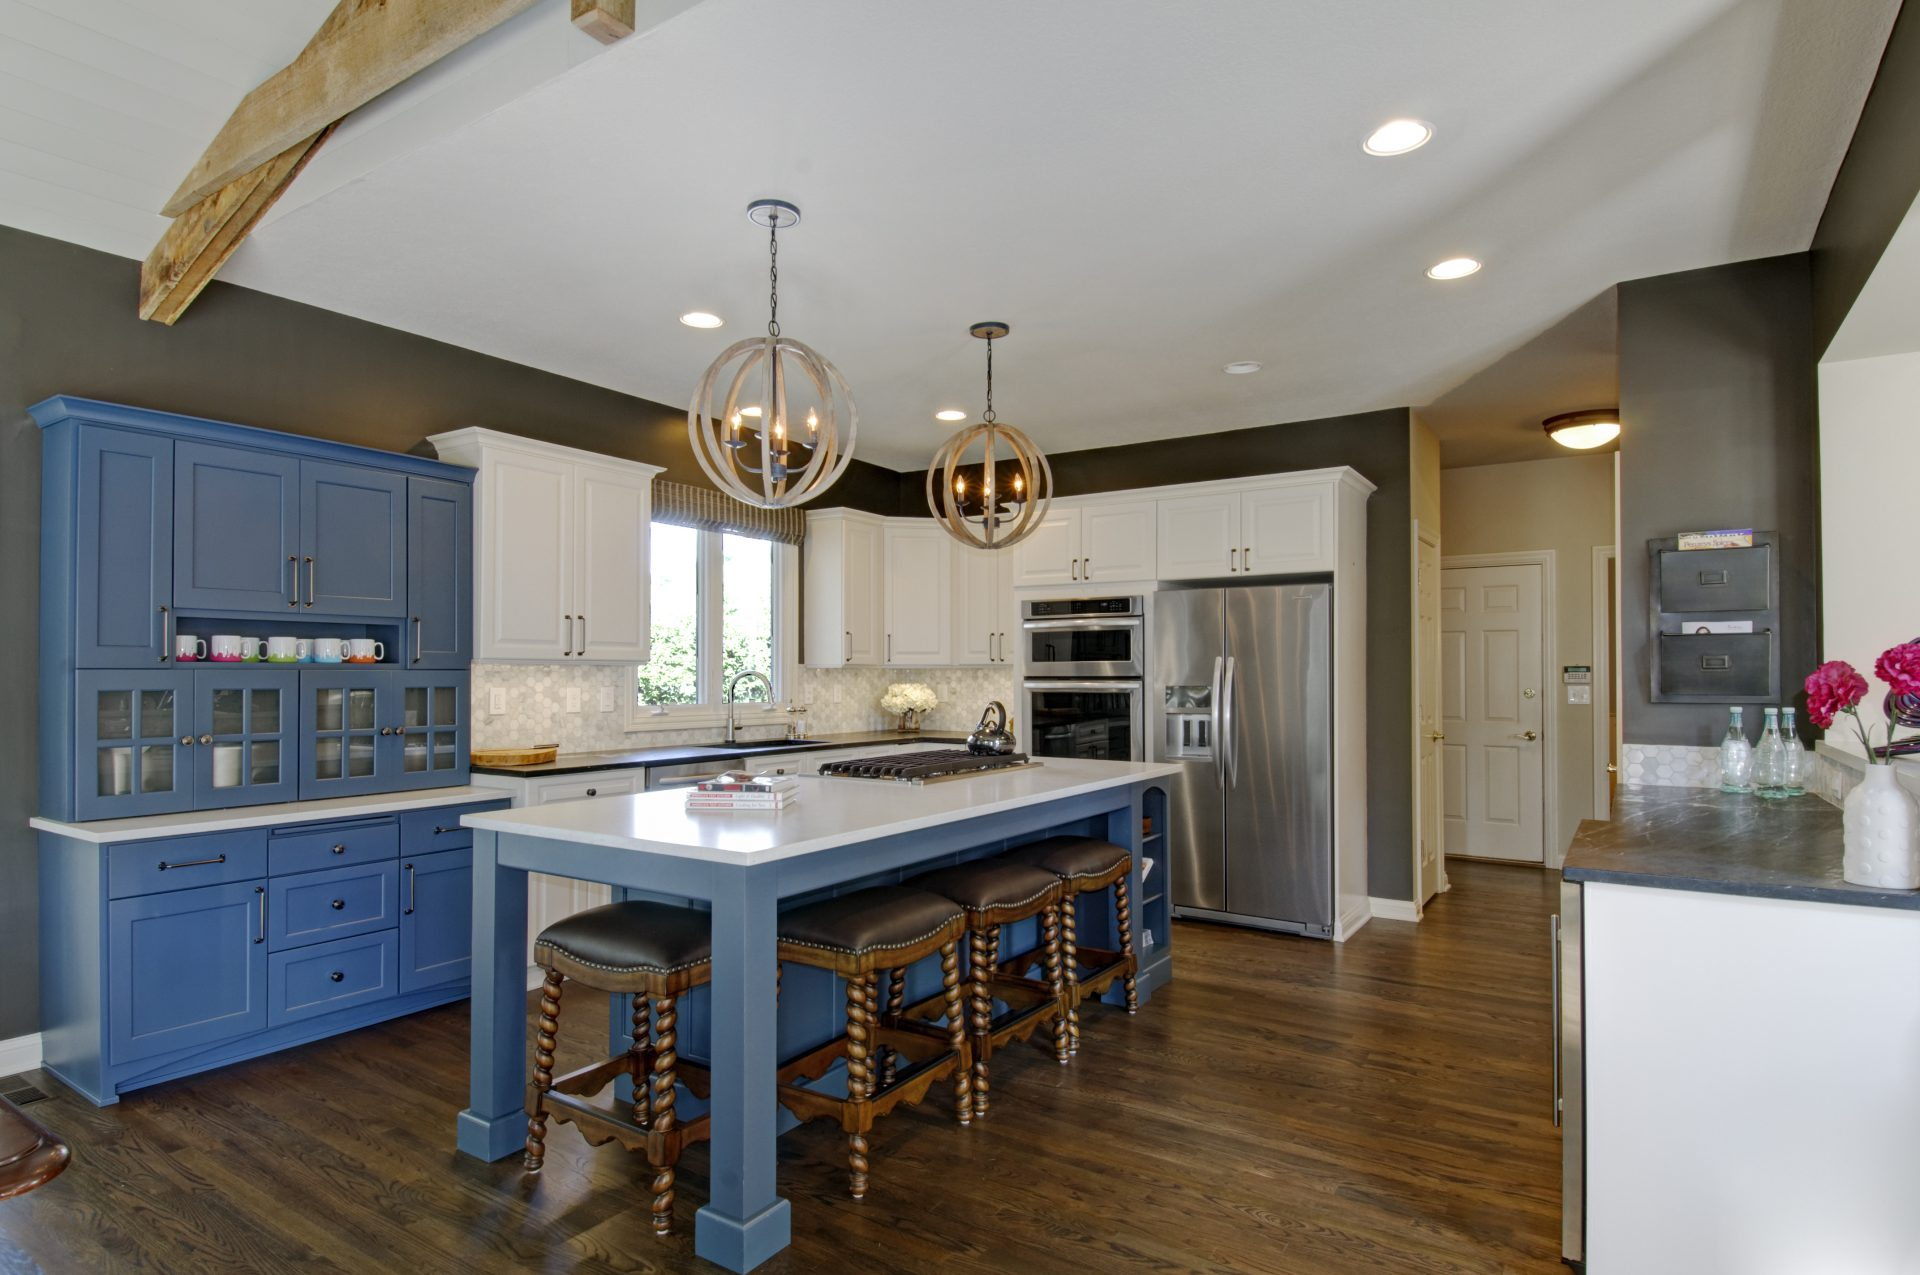 Kitchen, Powell, Dave Fox, Remodel, wood beams, large island, chandelier, wood floors, blue cabinets, shiplap, farmhouse, hexagon tile